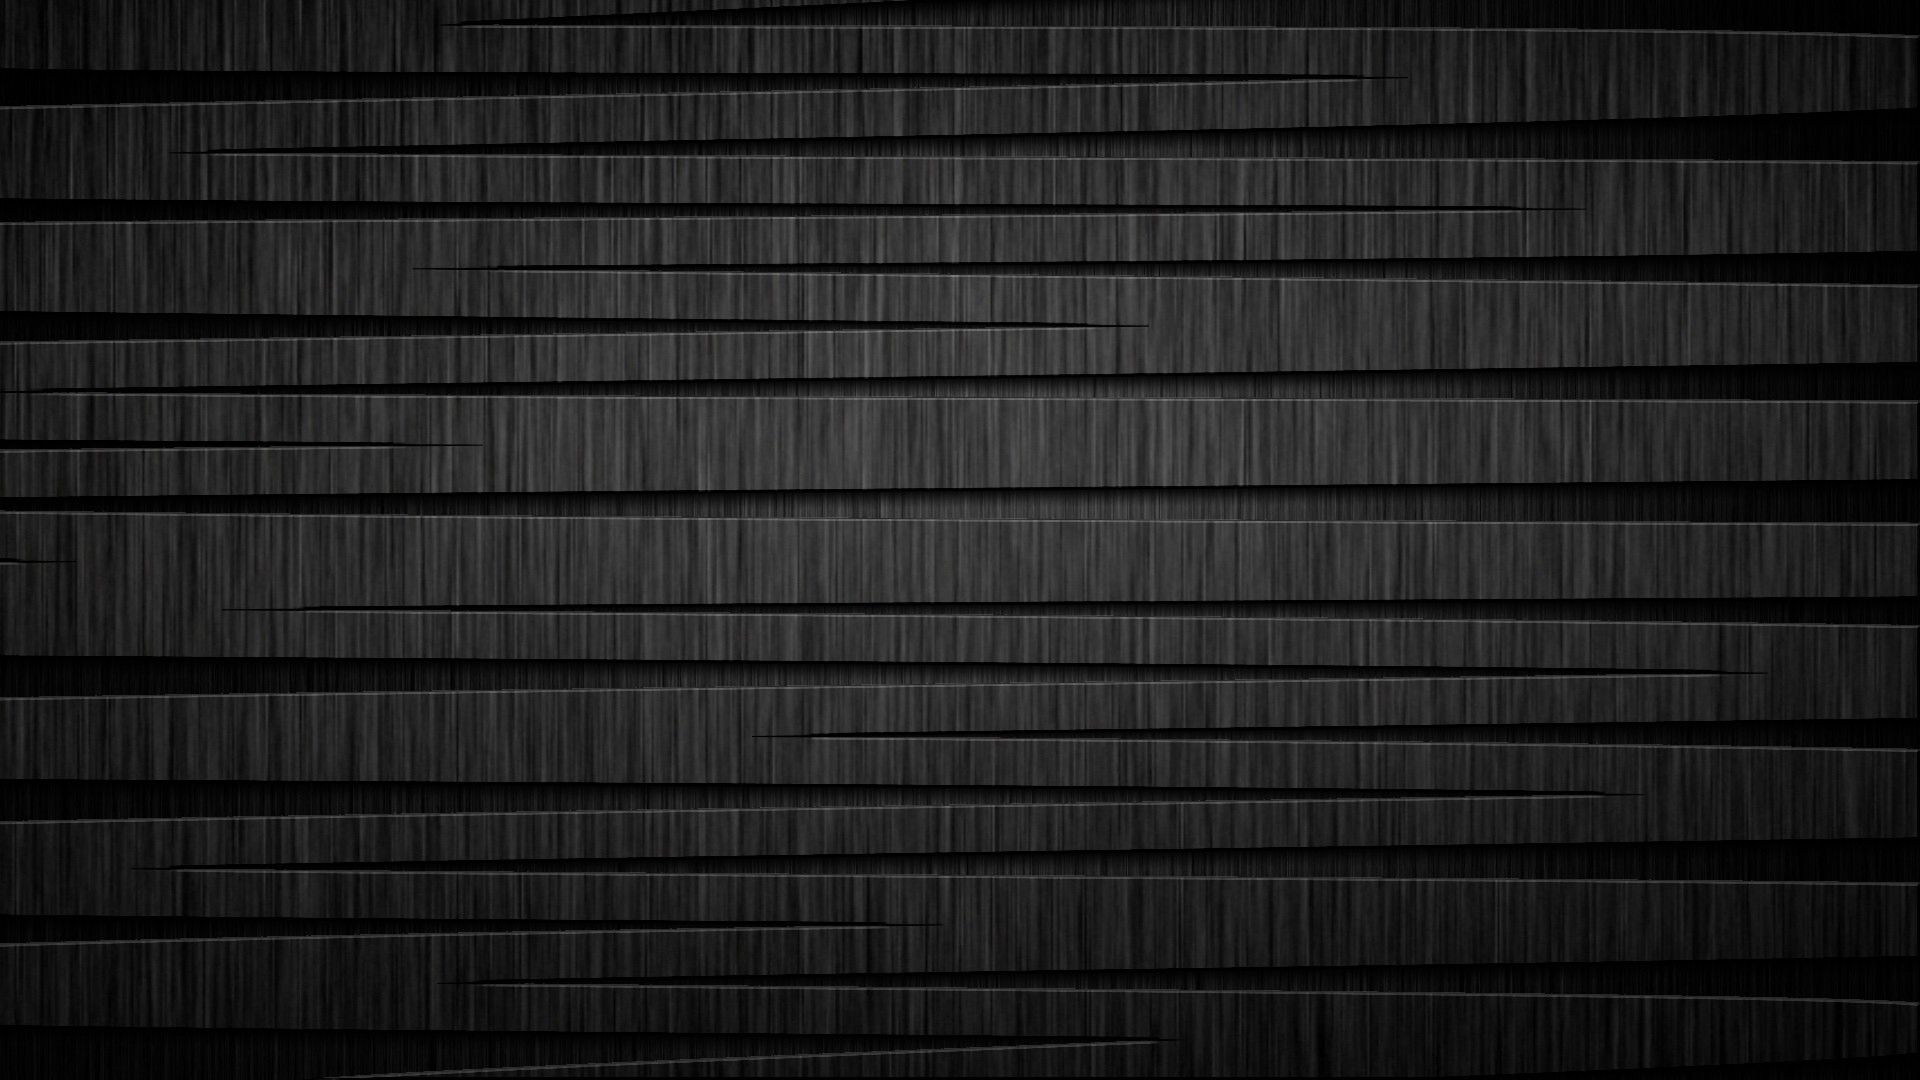 Black Pattern Background Wallpaper Http Wallpapers Ae